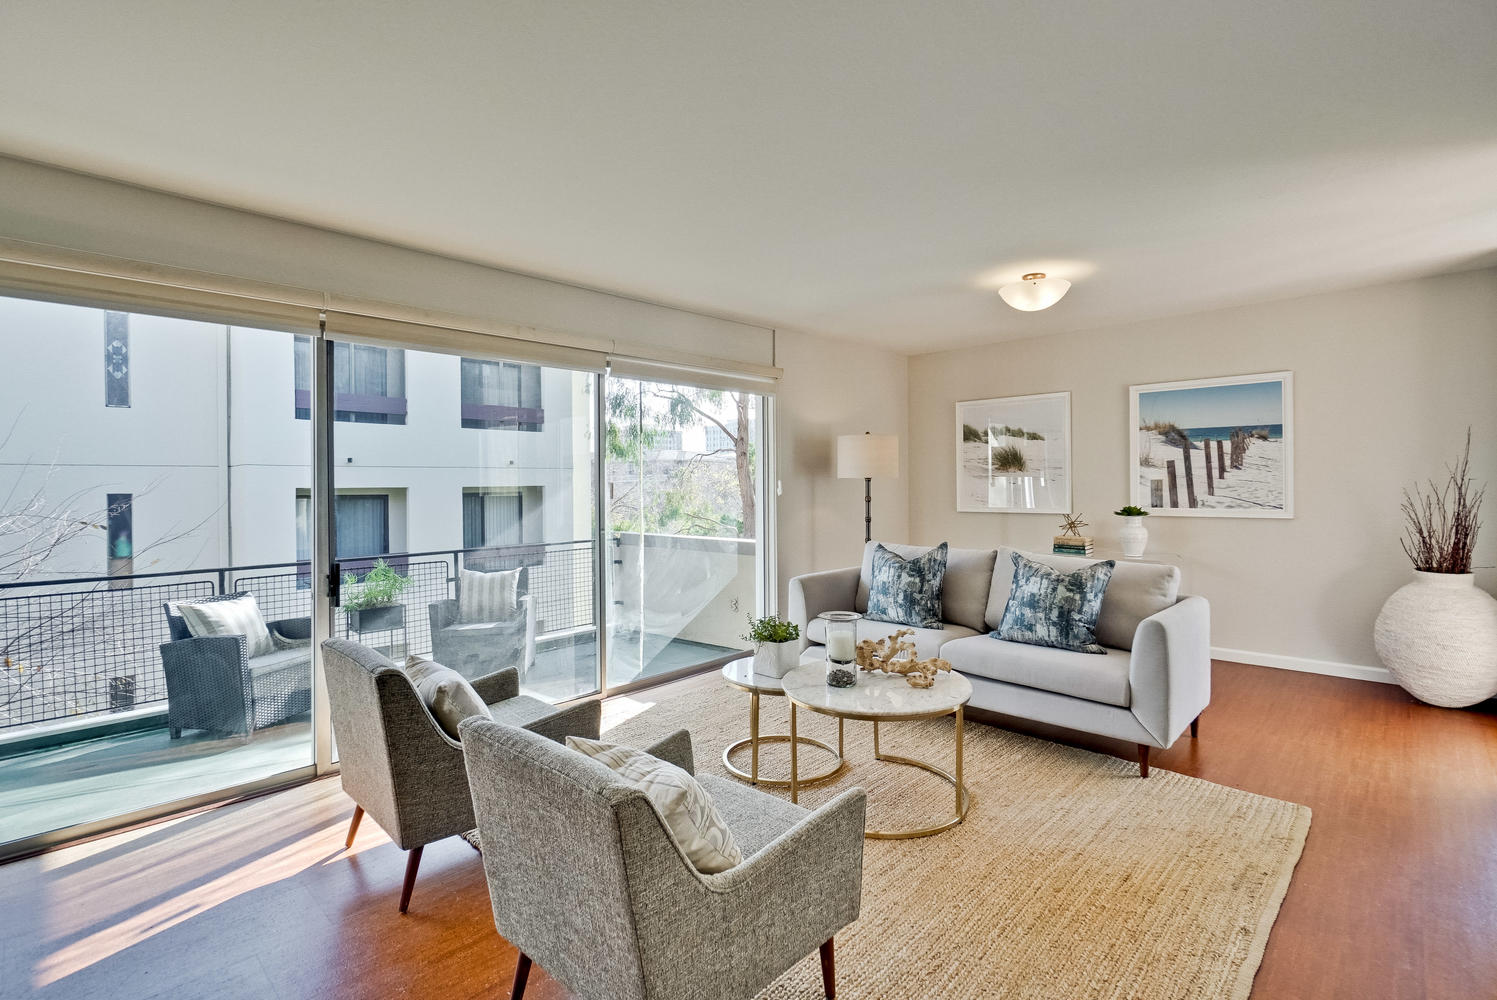 455 Grant Ave #14, Palo Alto   Sold for $1,500,000